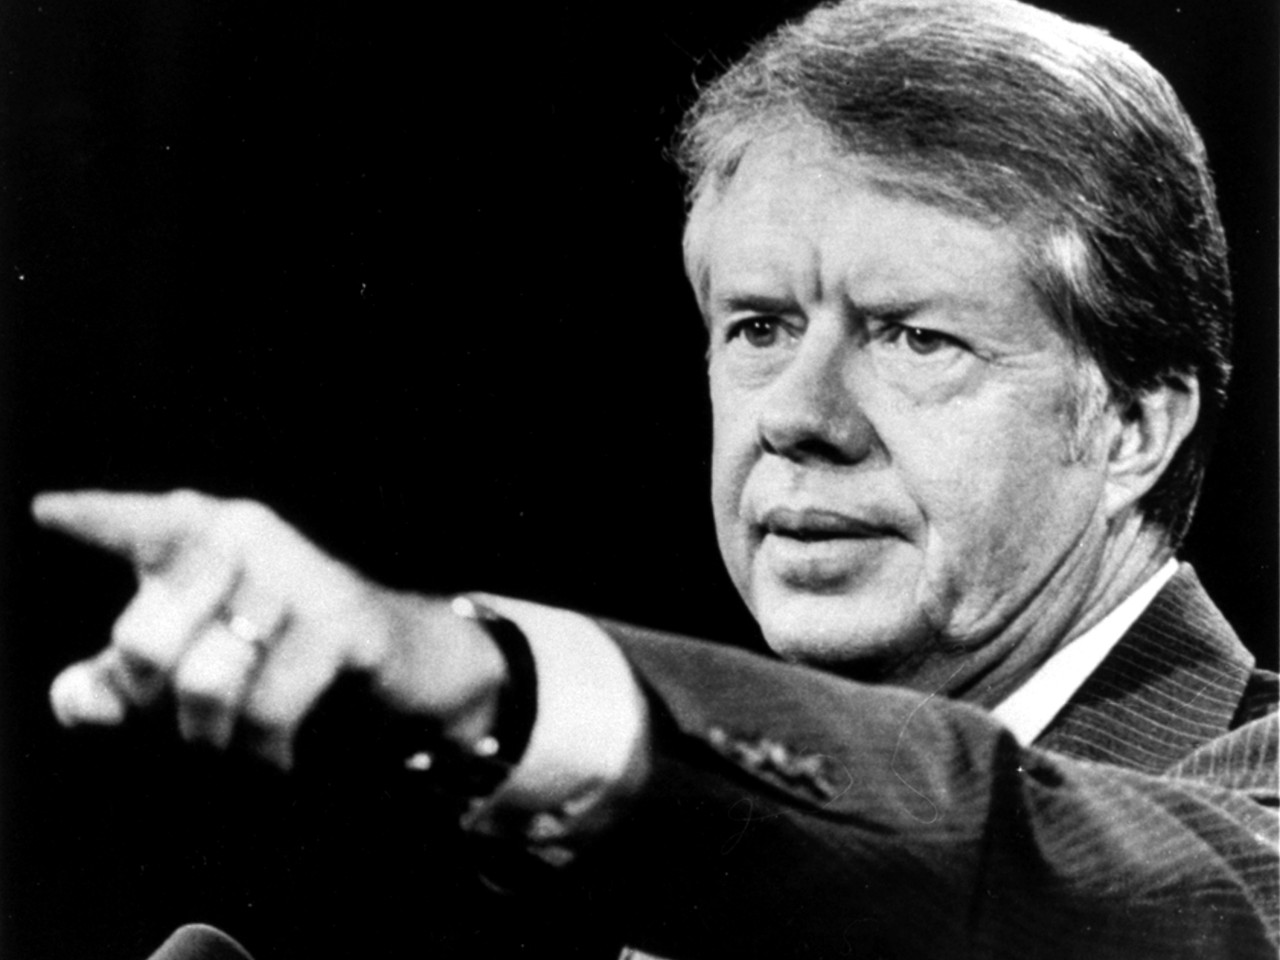 Jimmy Carter Upstander Brendan Bossany